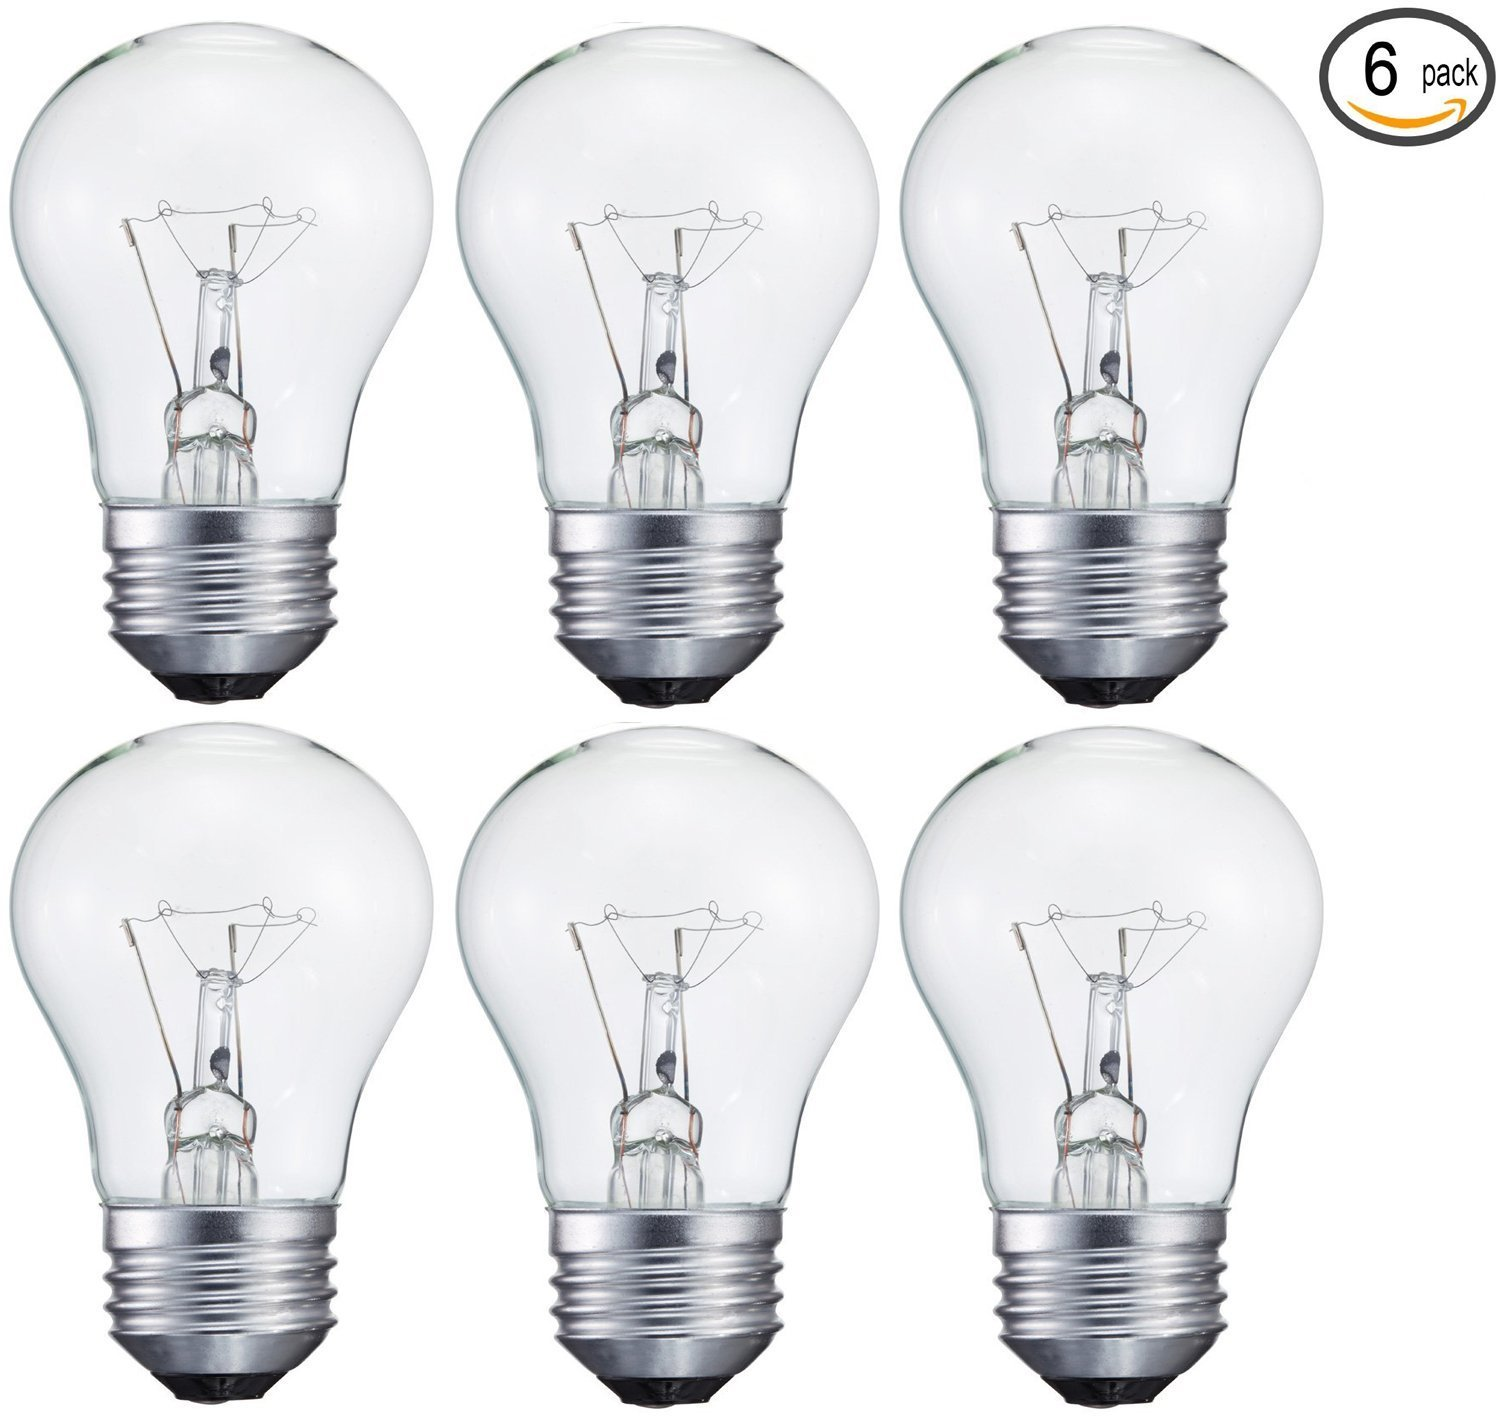 6 pack 15-Watt Decorative A15 Incandescent Light Bulb, Medium (E26 ...